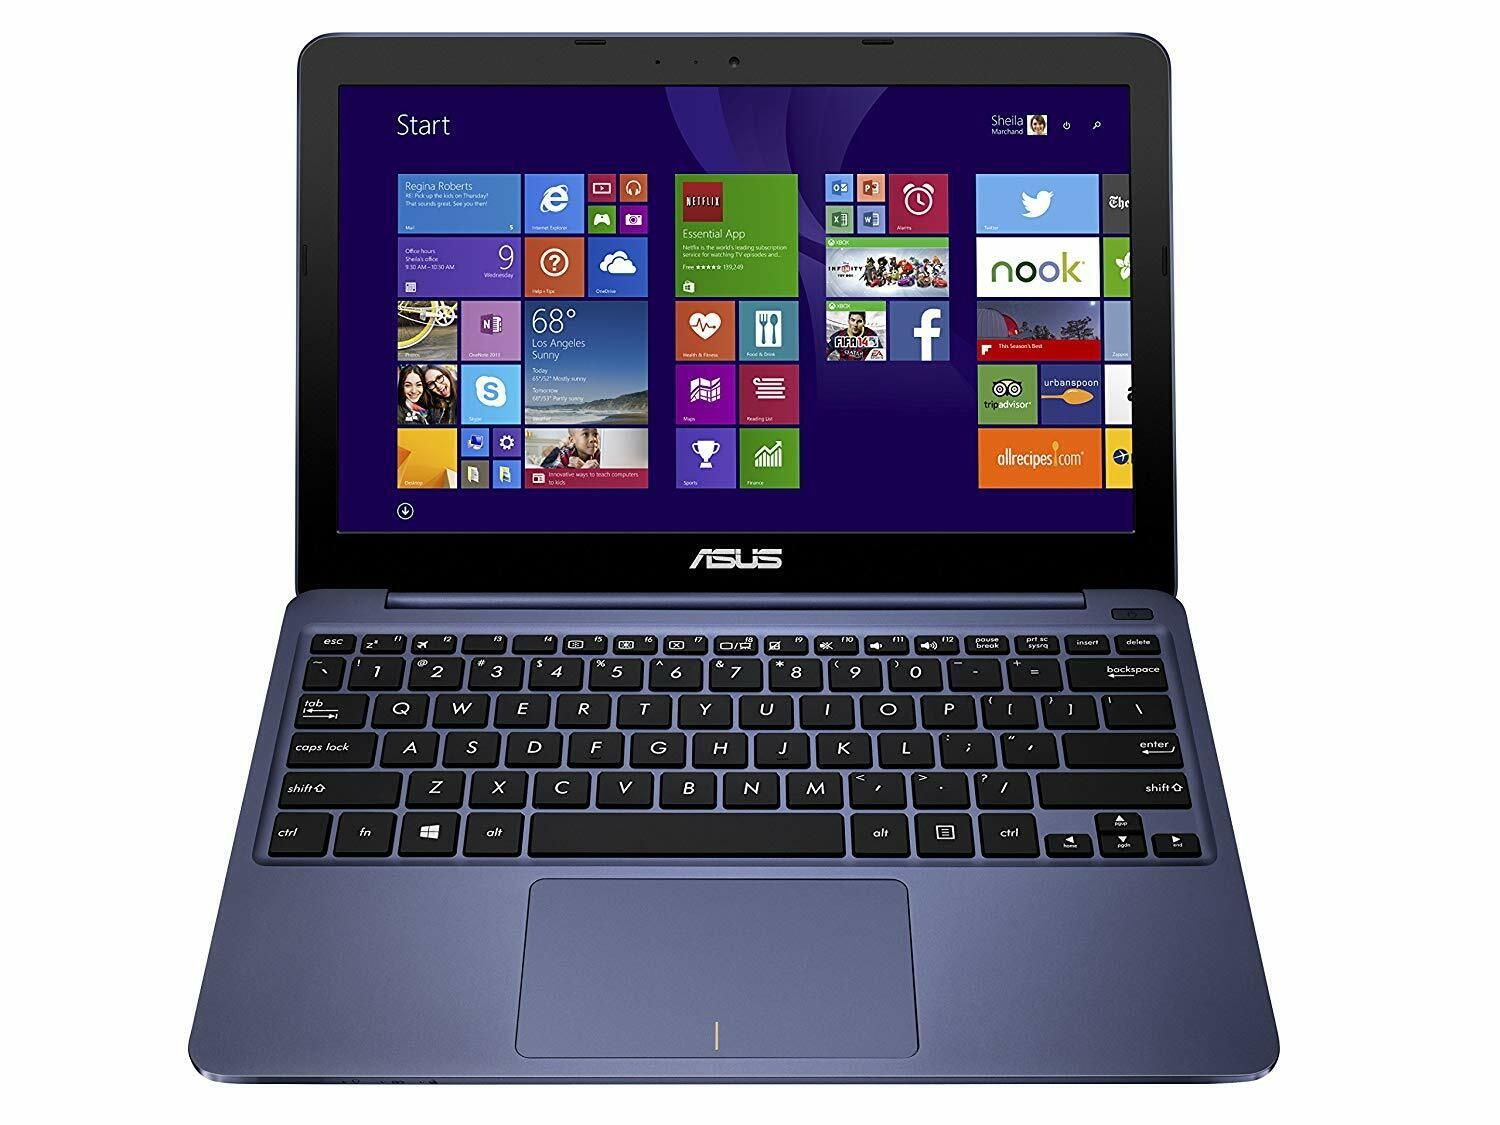 "Laptop Windows - ASUS EEEBook X205TA 11.6"" Light Weight Laptop Intel Dual Core, 32GB, Windows 10"